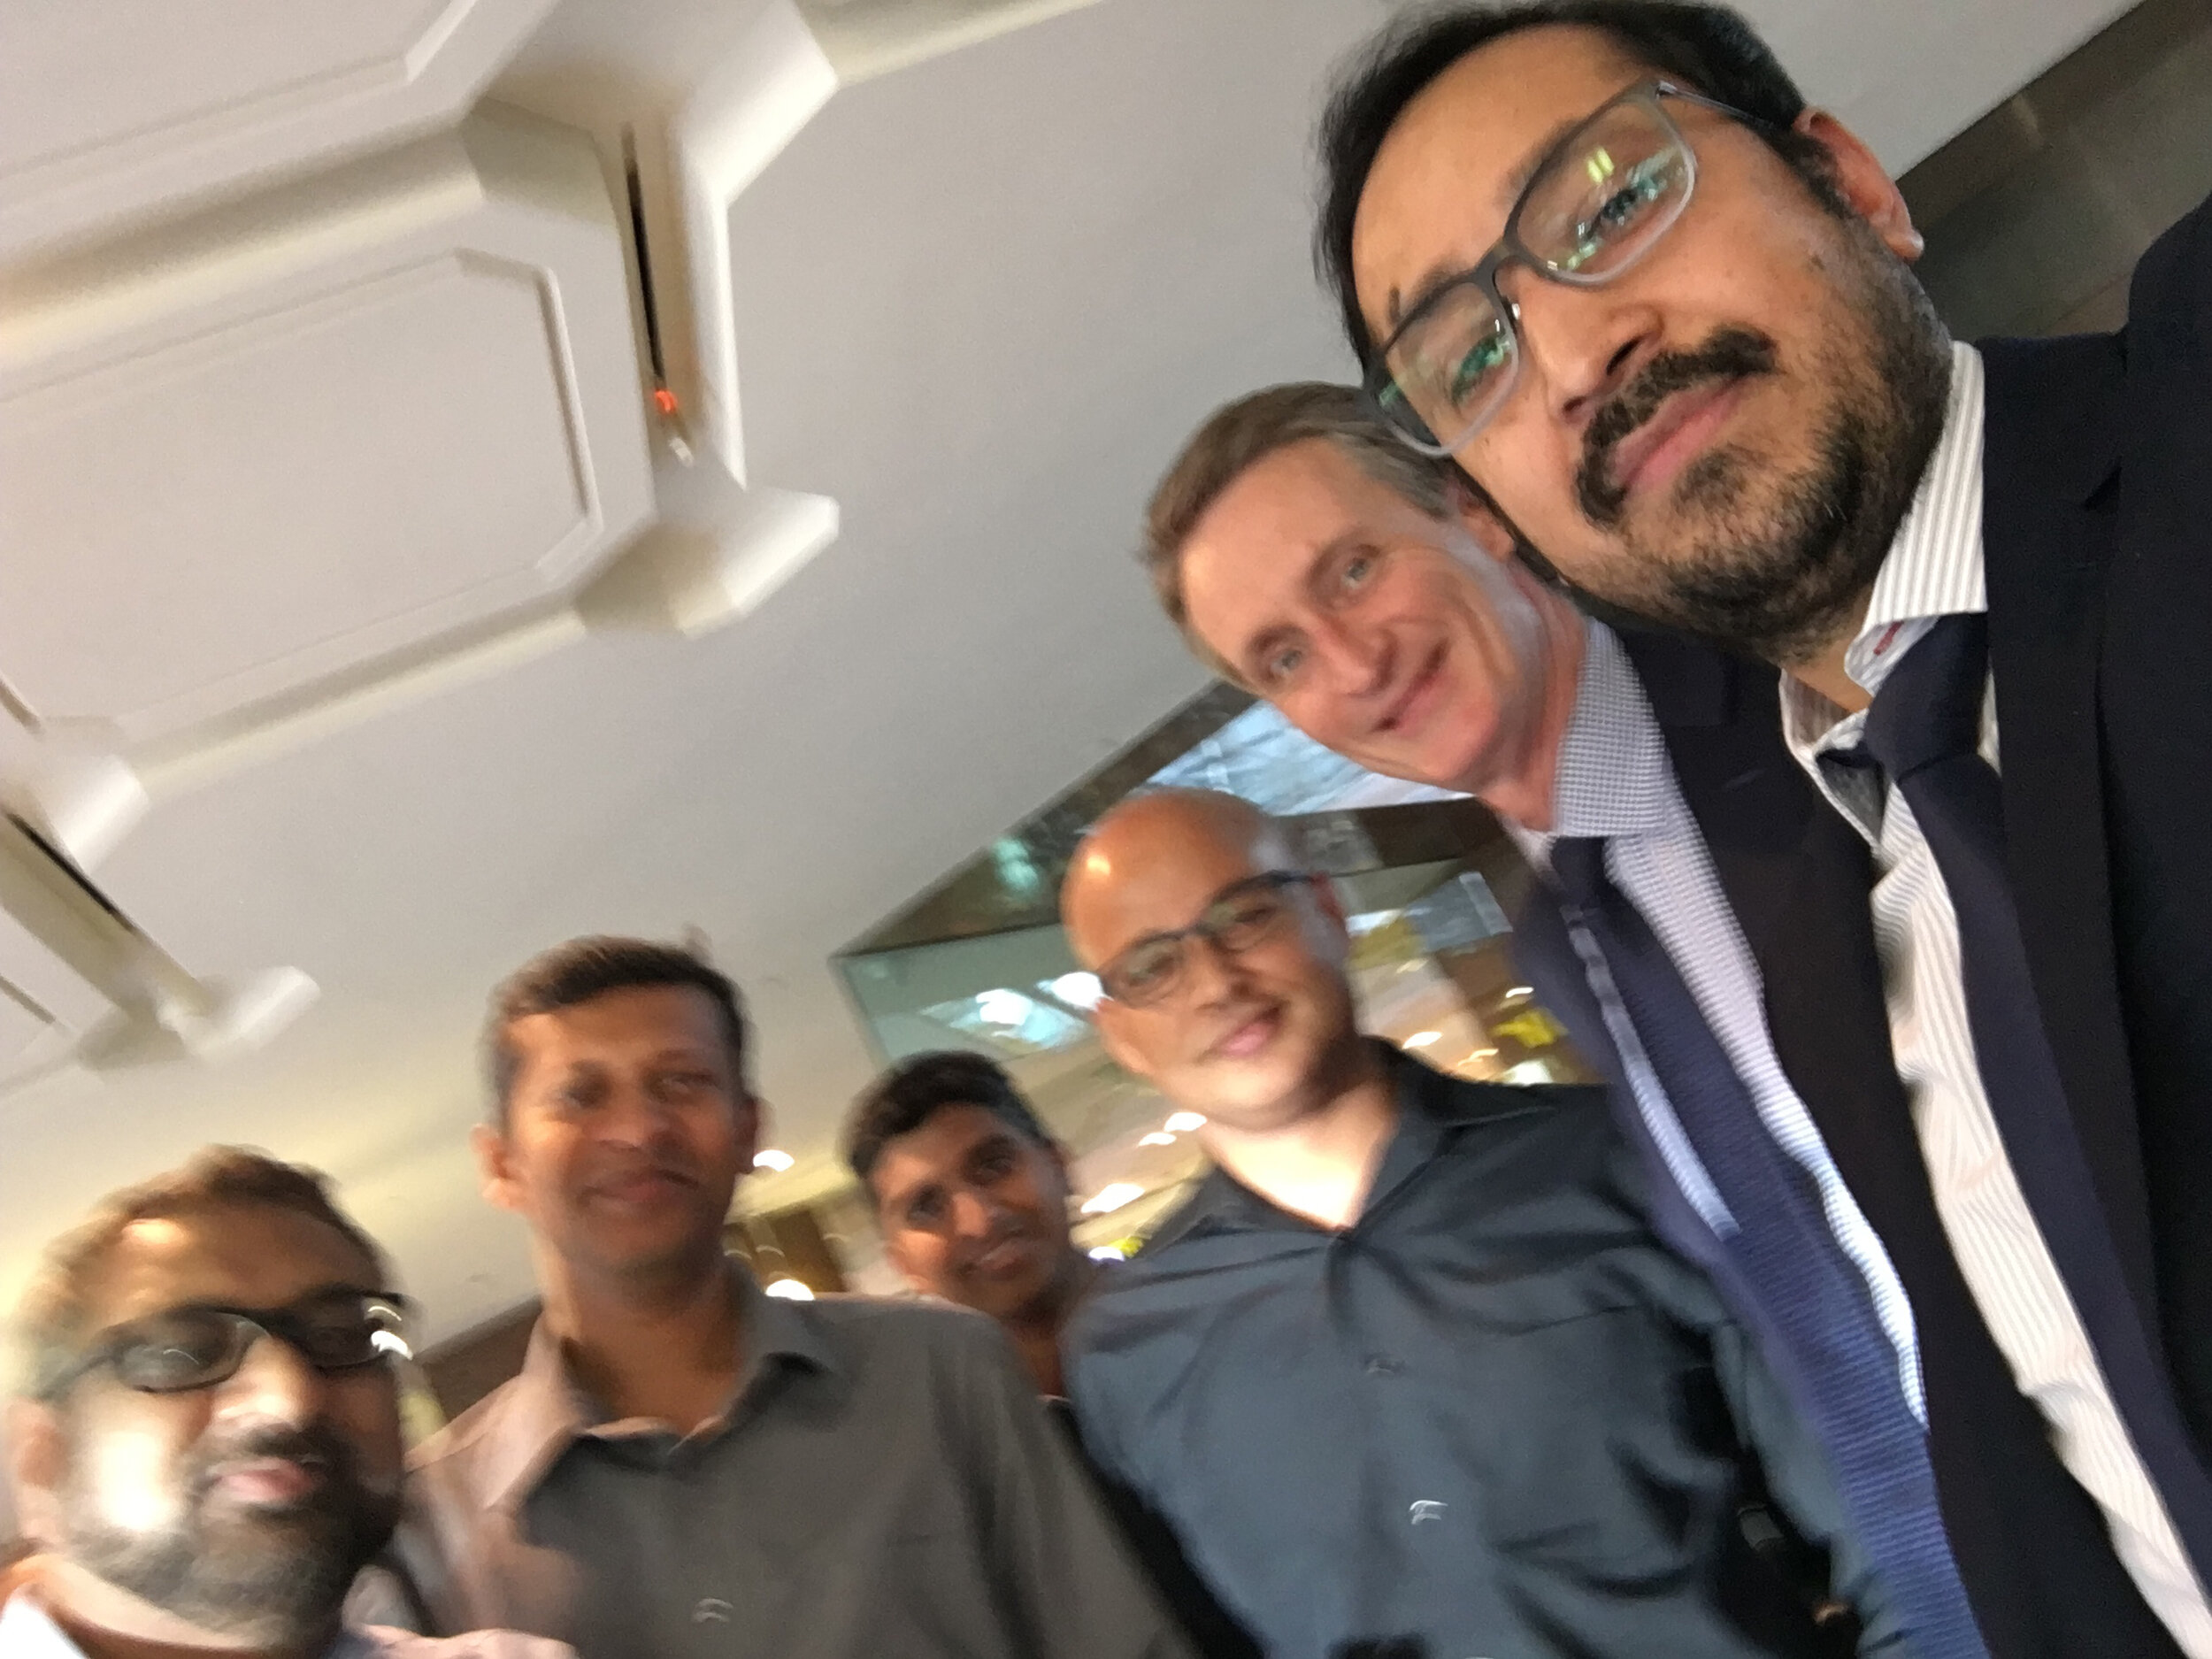 The picture is blurry but I assure you the team was sharp in downtown Calgary yesterday! (Oct 17)